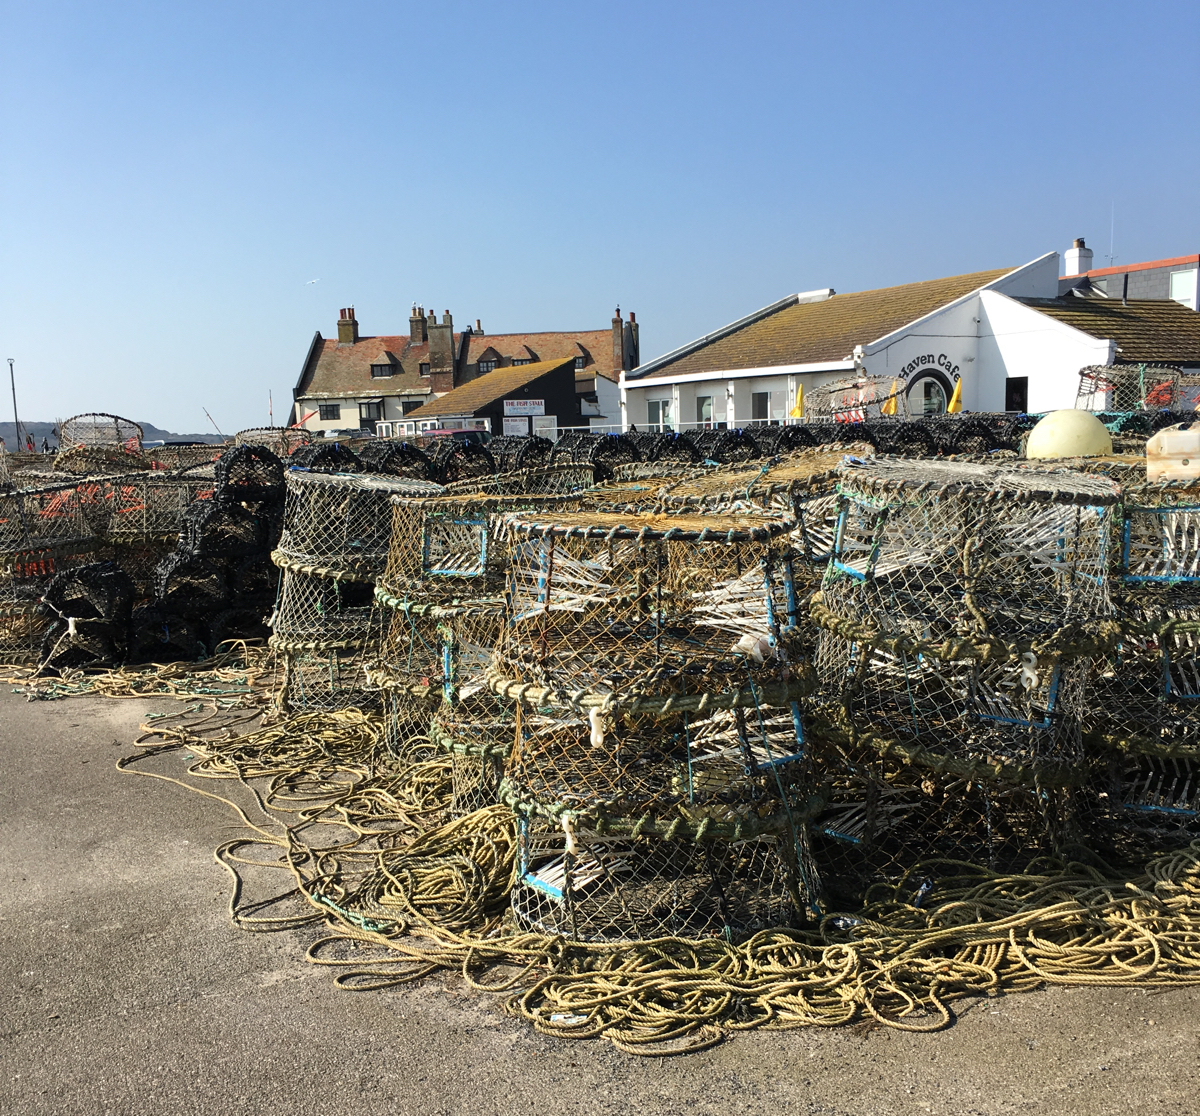 mudeford-lobster-cage